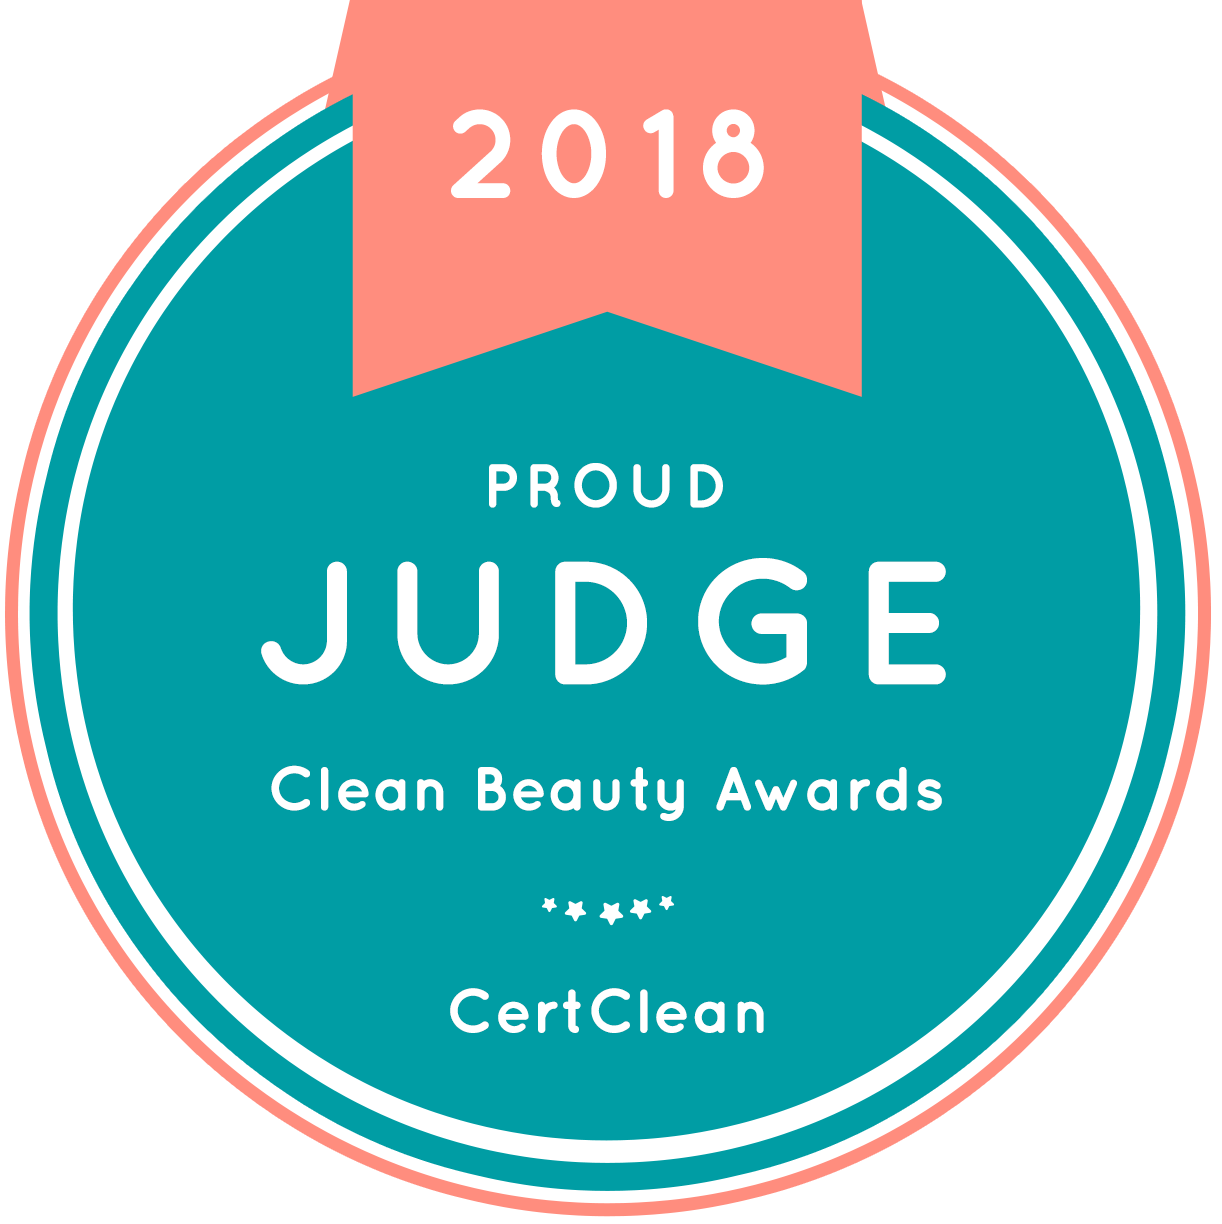 Judging the Clean Beauty Awards | CertClean